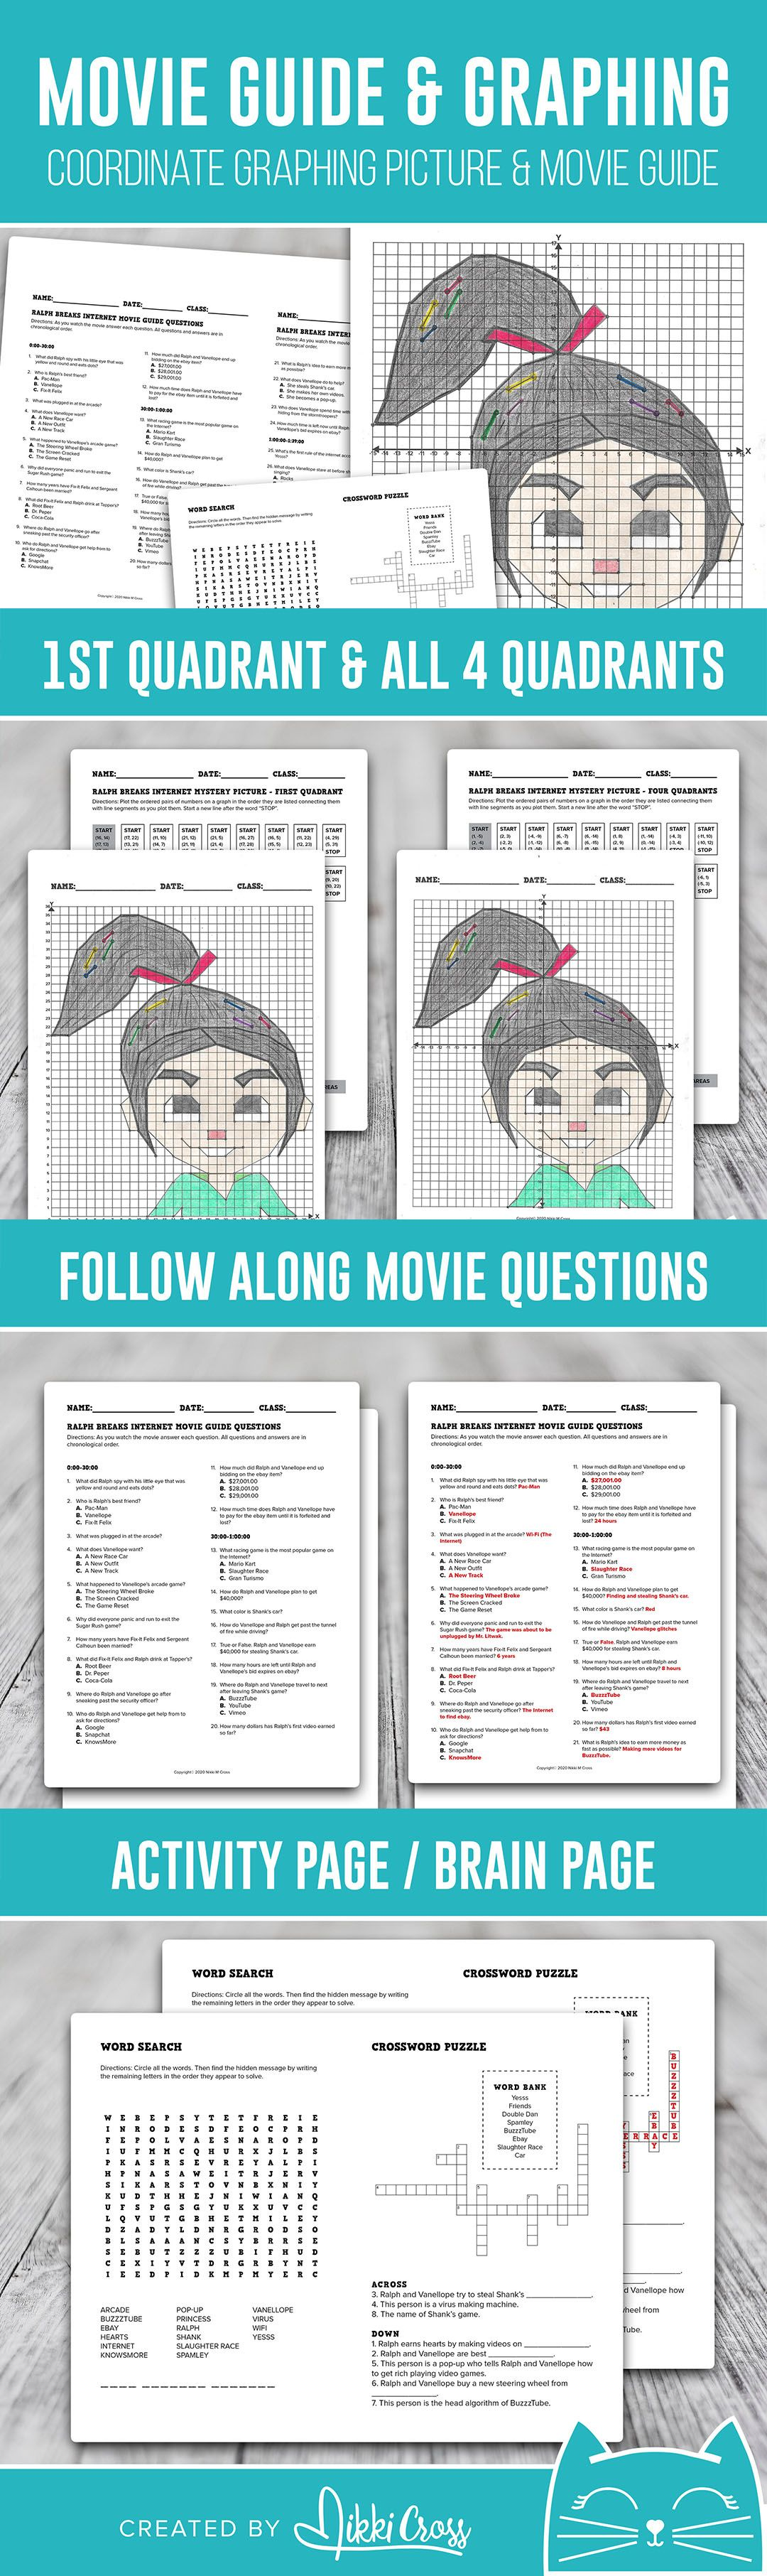 Movie Math Coordinate Graphing Picture Amp Movie Guide